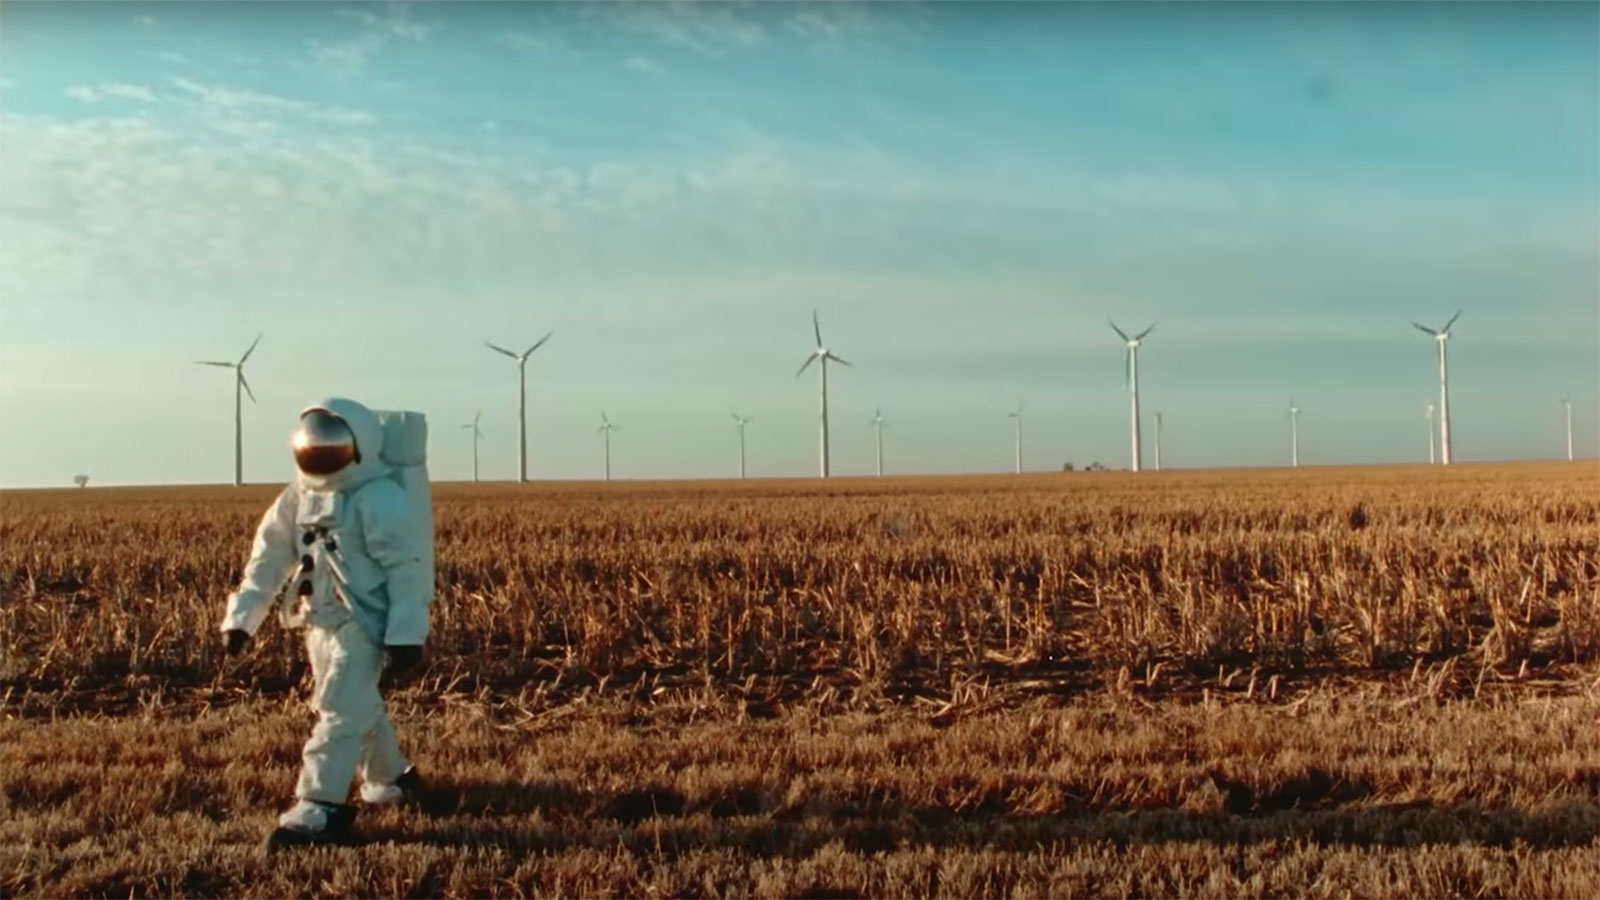 Is the lonely astronaut in Bad Bunny's newest video thinking about lost love or a lost environment? thumbnail